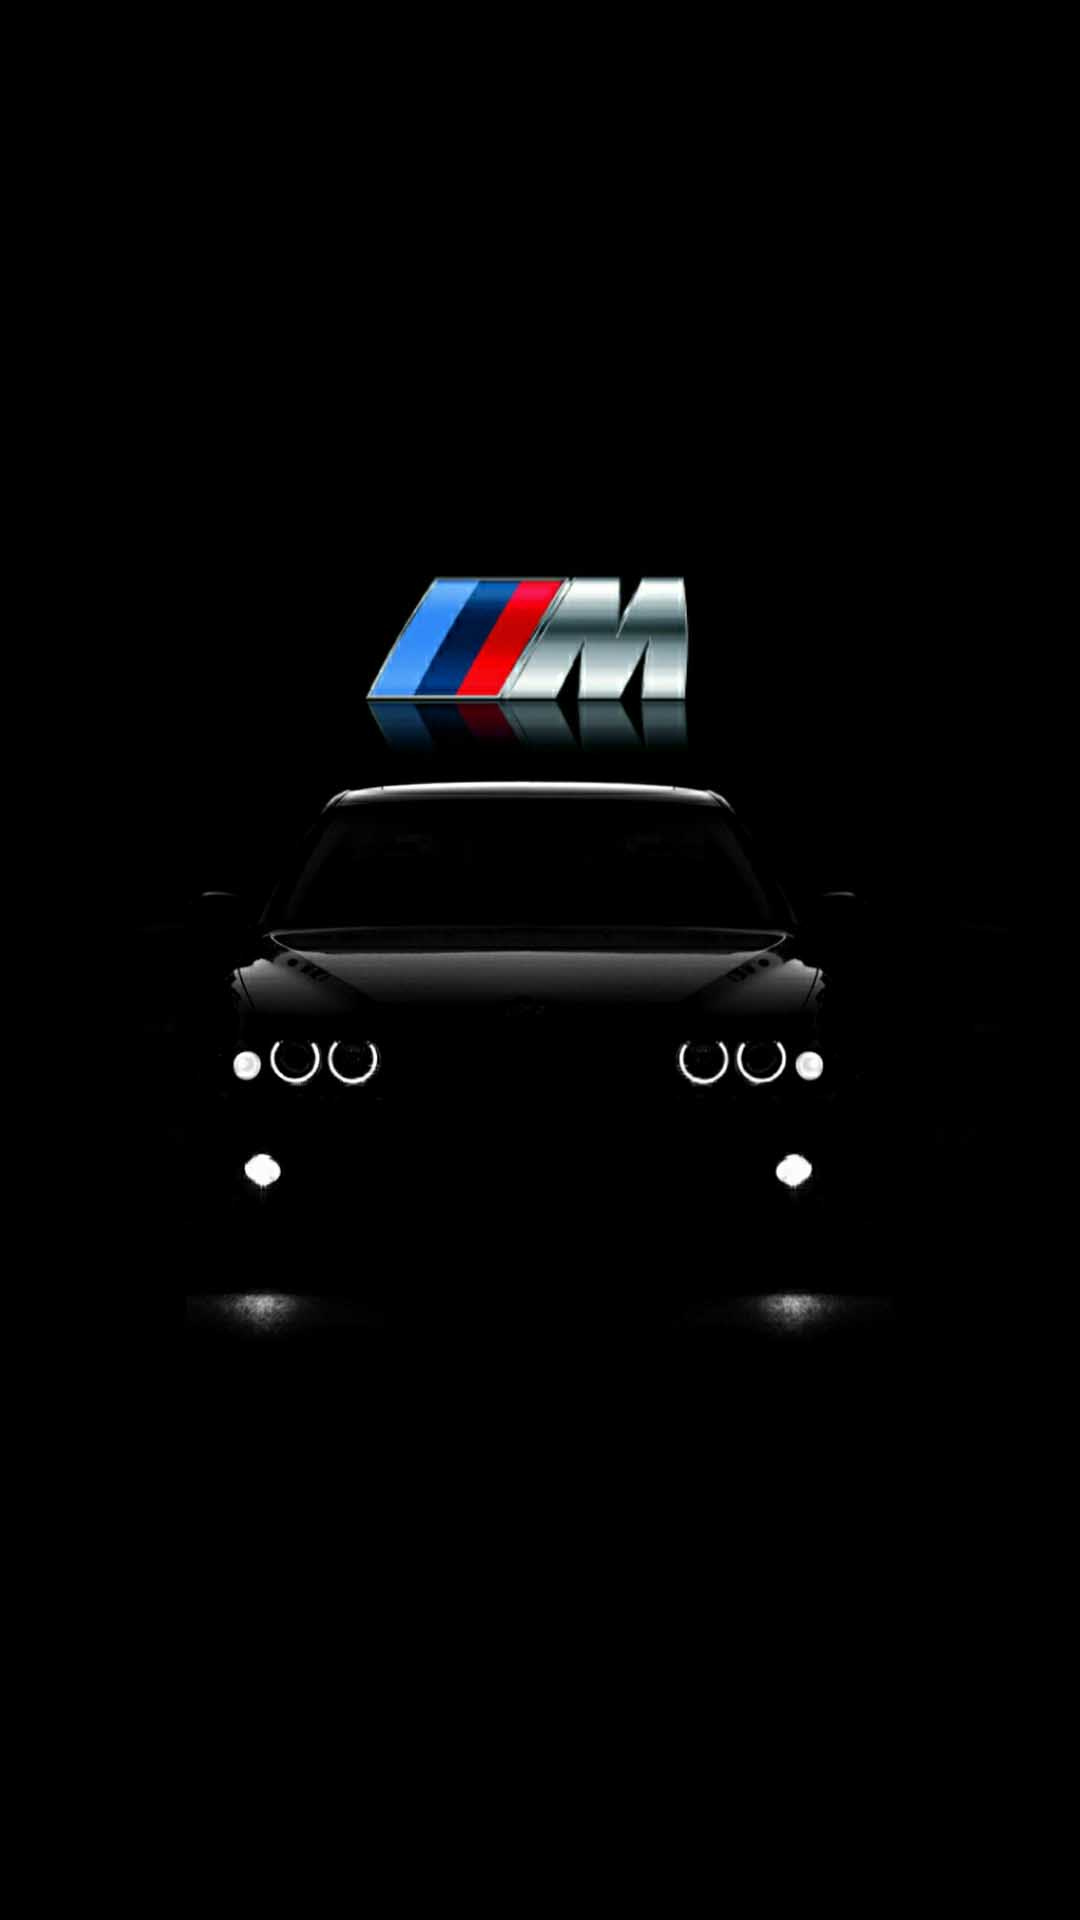 Bmw Wallpaper For Iphone 11 Pro Max X 8 7 6 Free Download On 3wallpapers